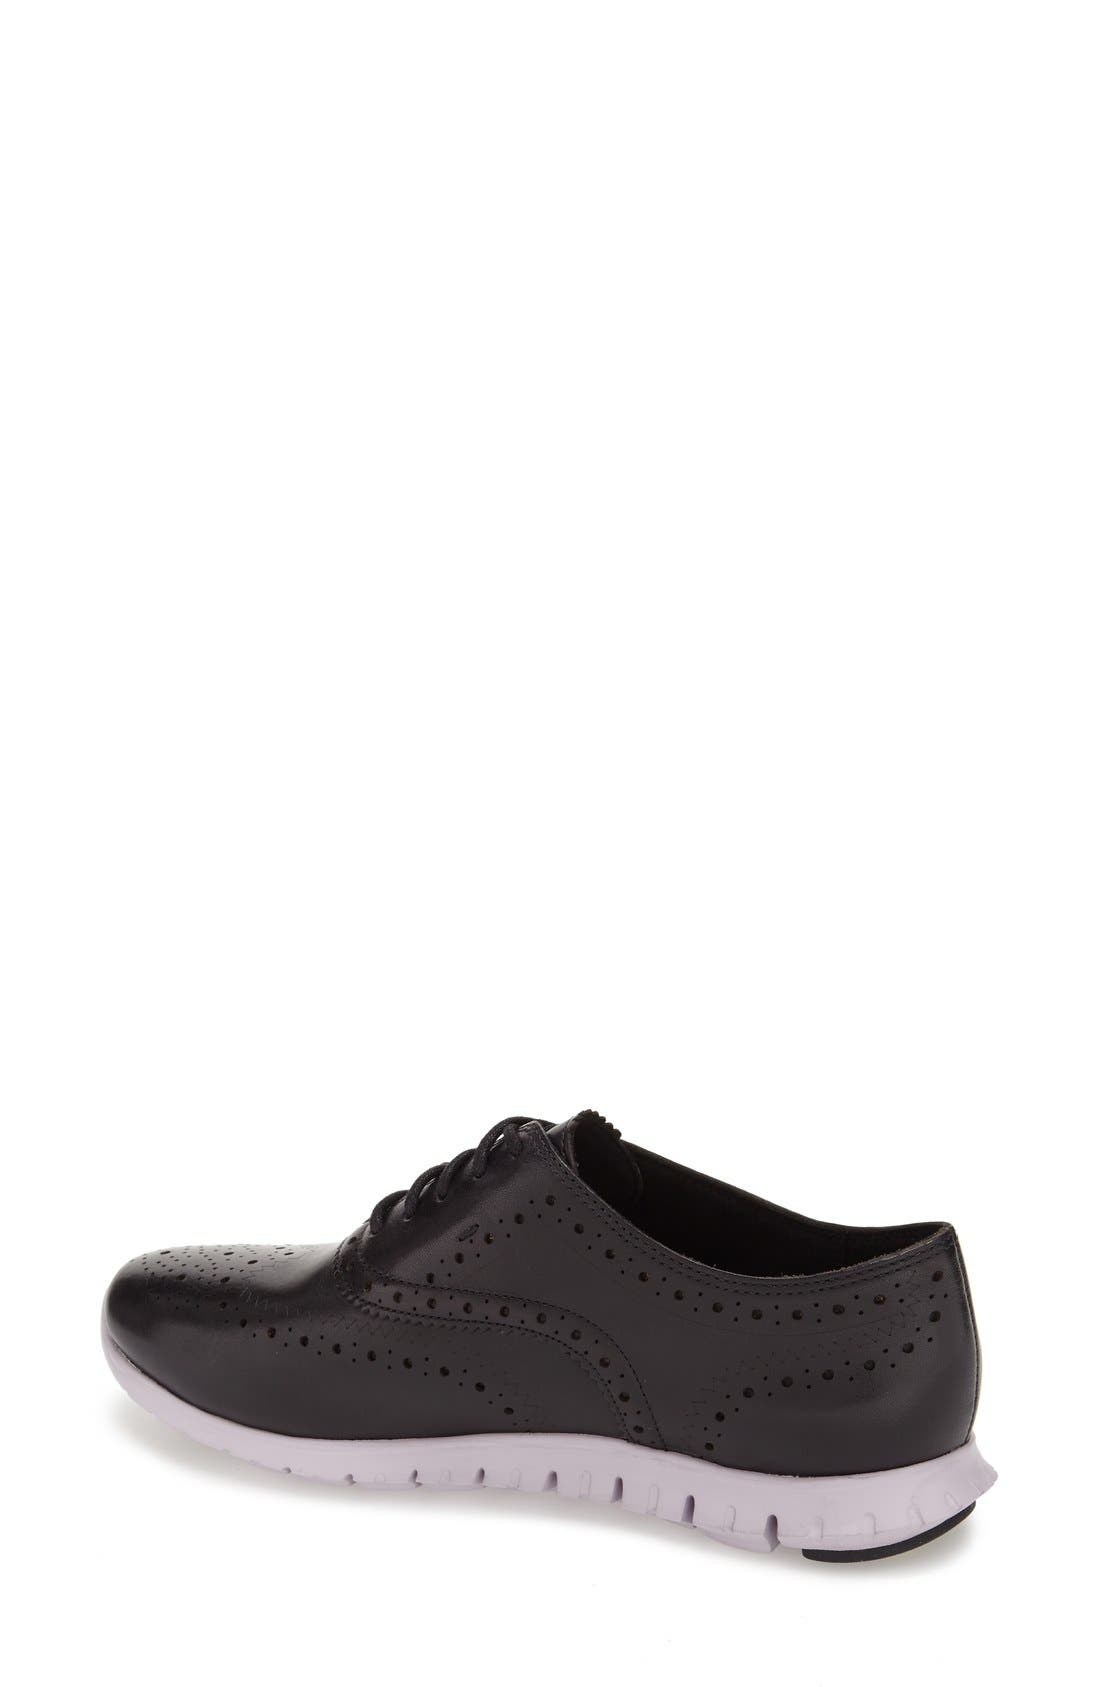 'ZeroGrand' Perforated Wingtip,                             Alternate thumbnail 37, color,